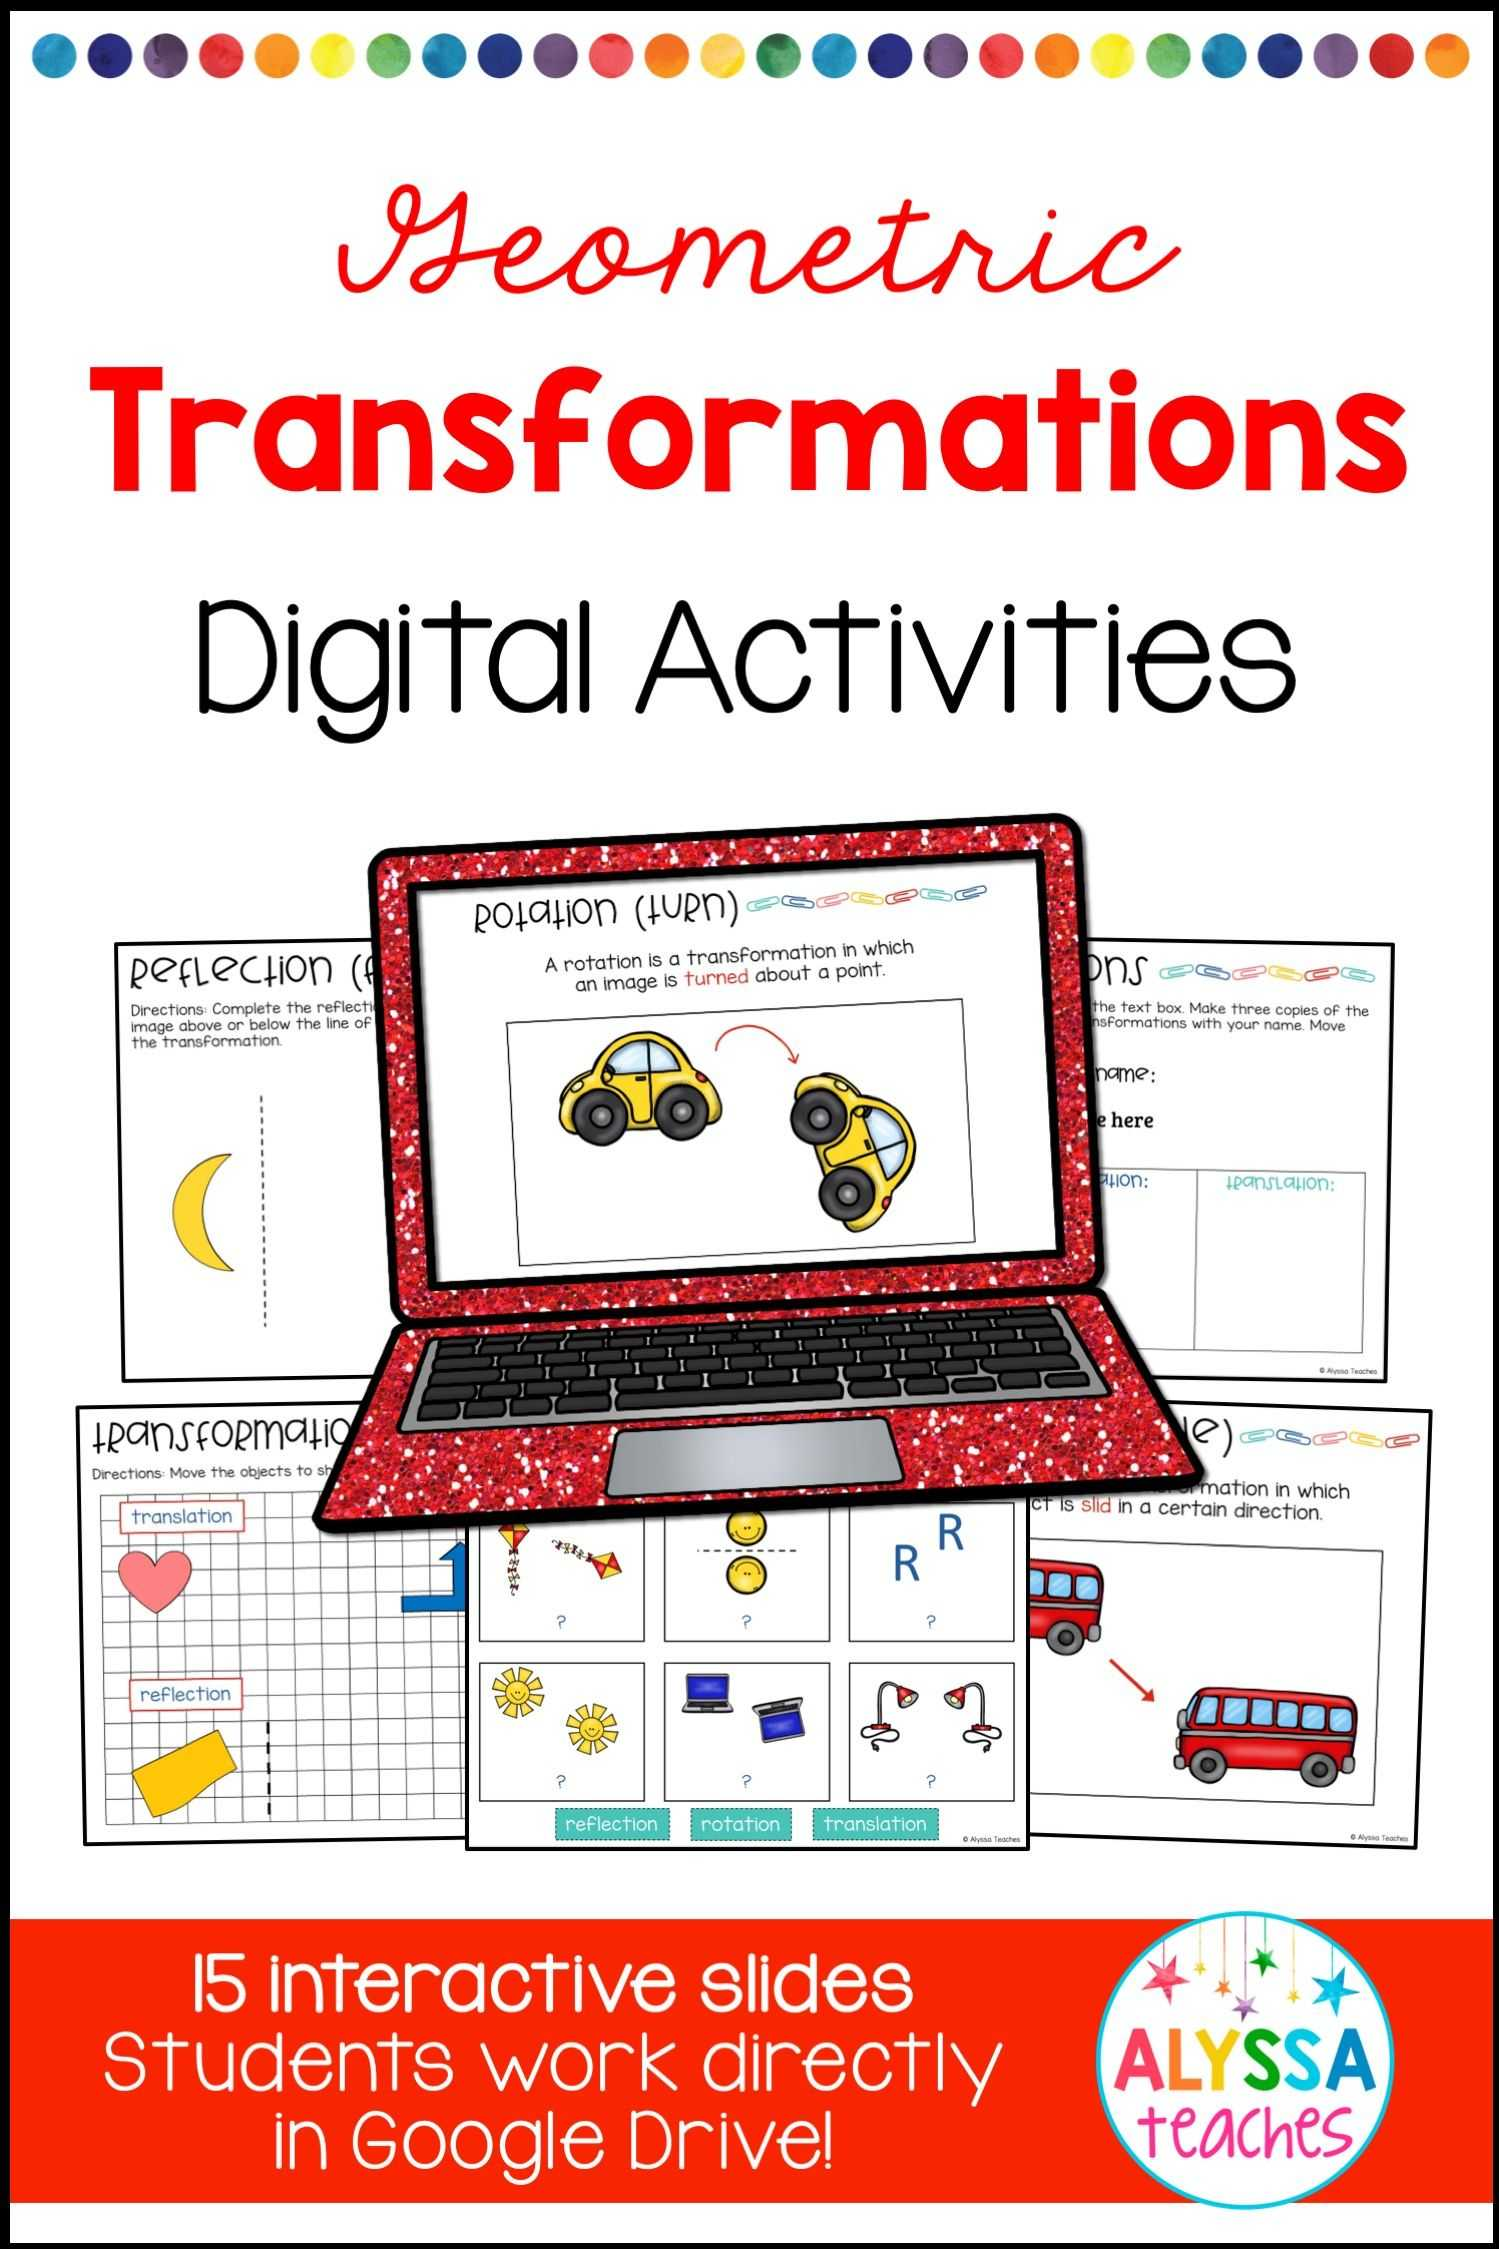 Translation and Reflection Worksheet Answers and Transformations Digital Activities